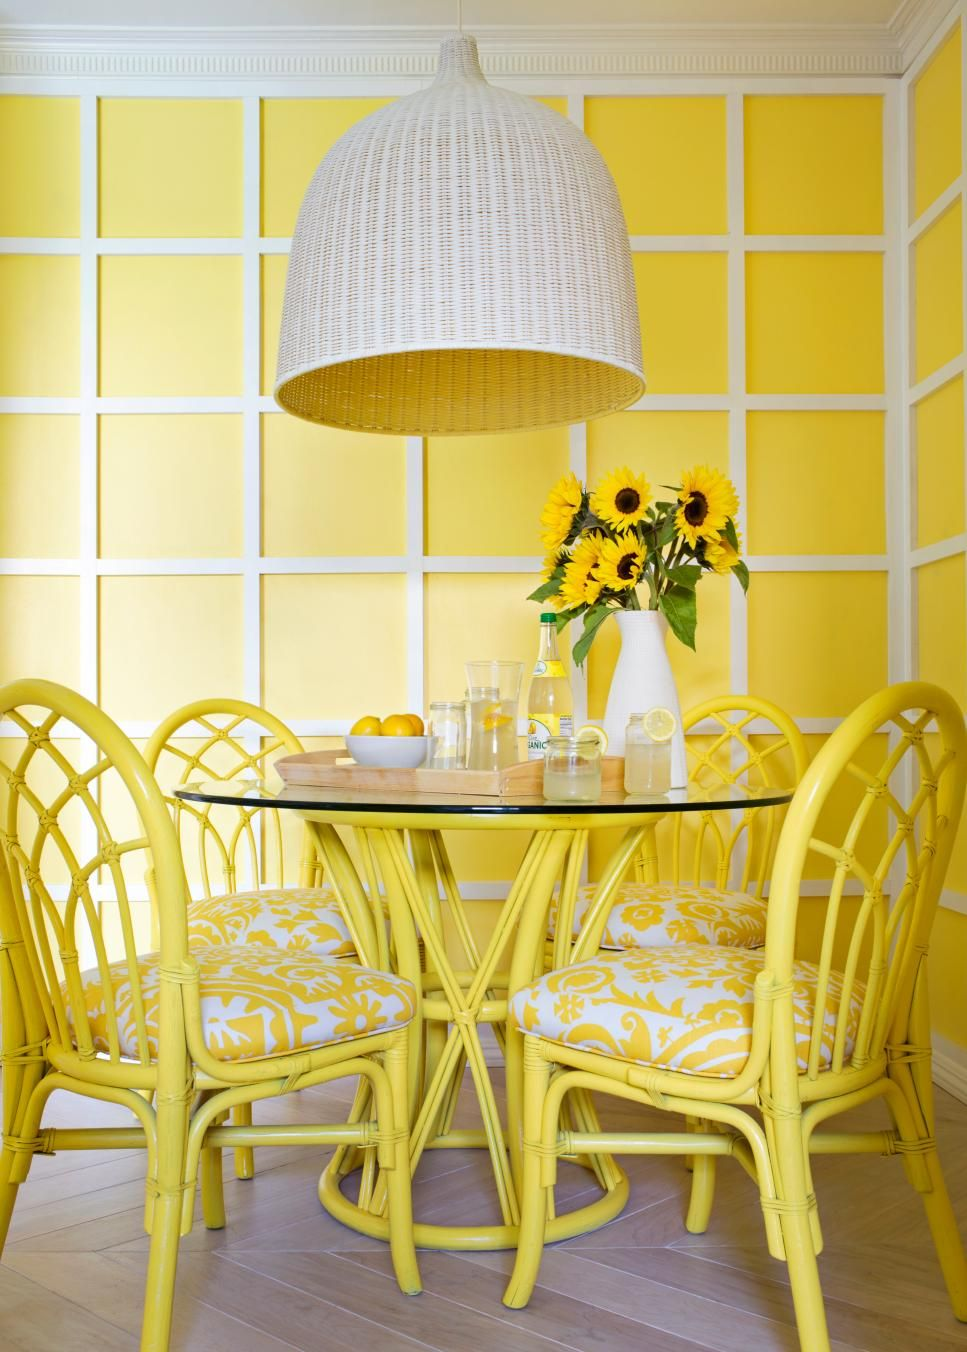 Hgtv S Picks The Hottest Color Right Now Color Palette And Schemes For Rooms In Your Home Hgtv Yellow Dining Room White Dining Room Dining Room Design